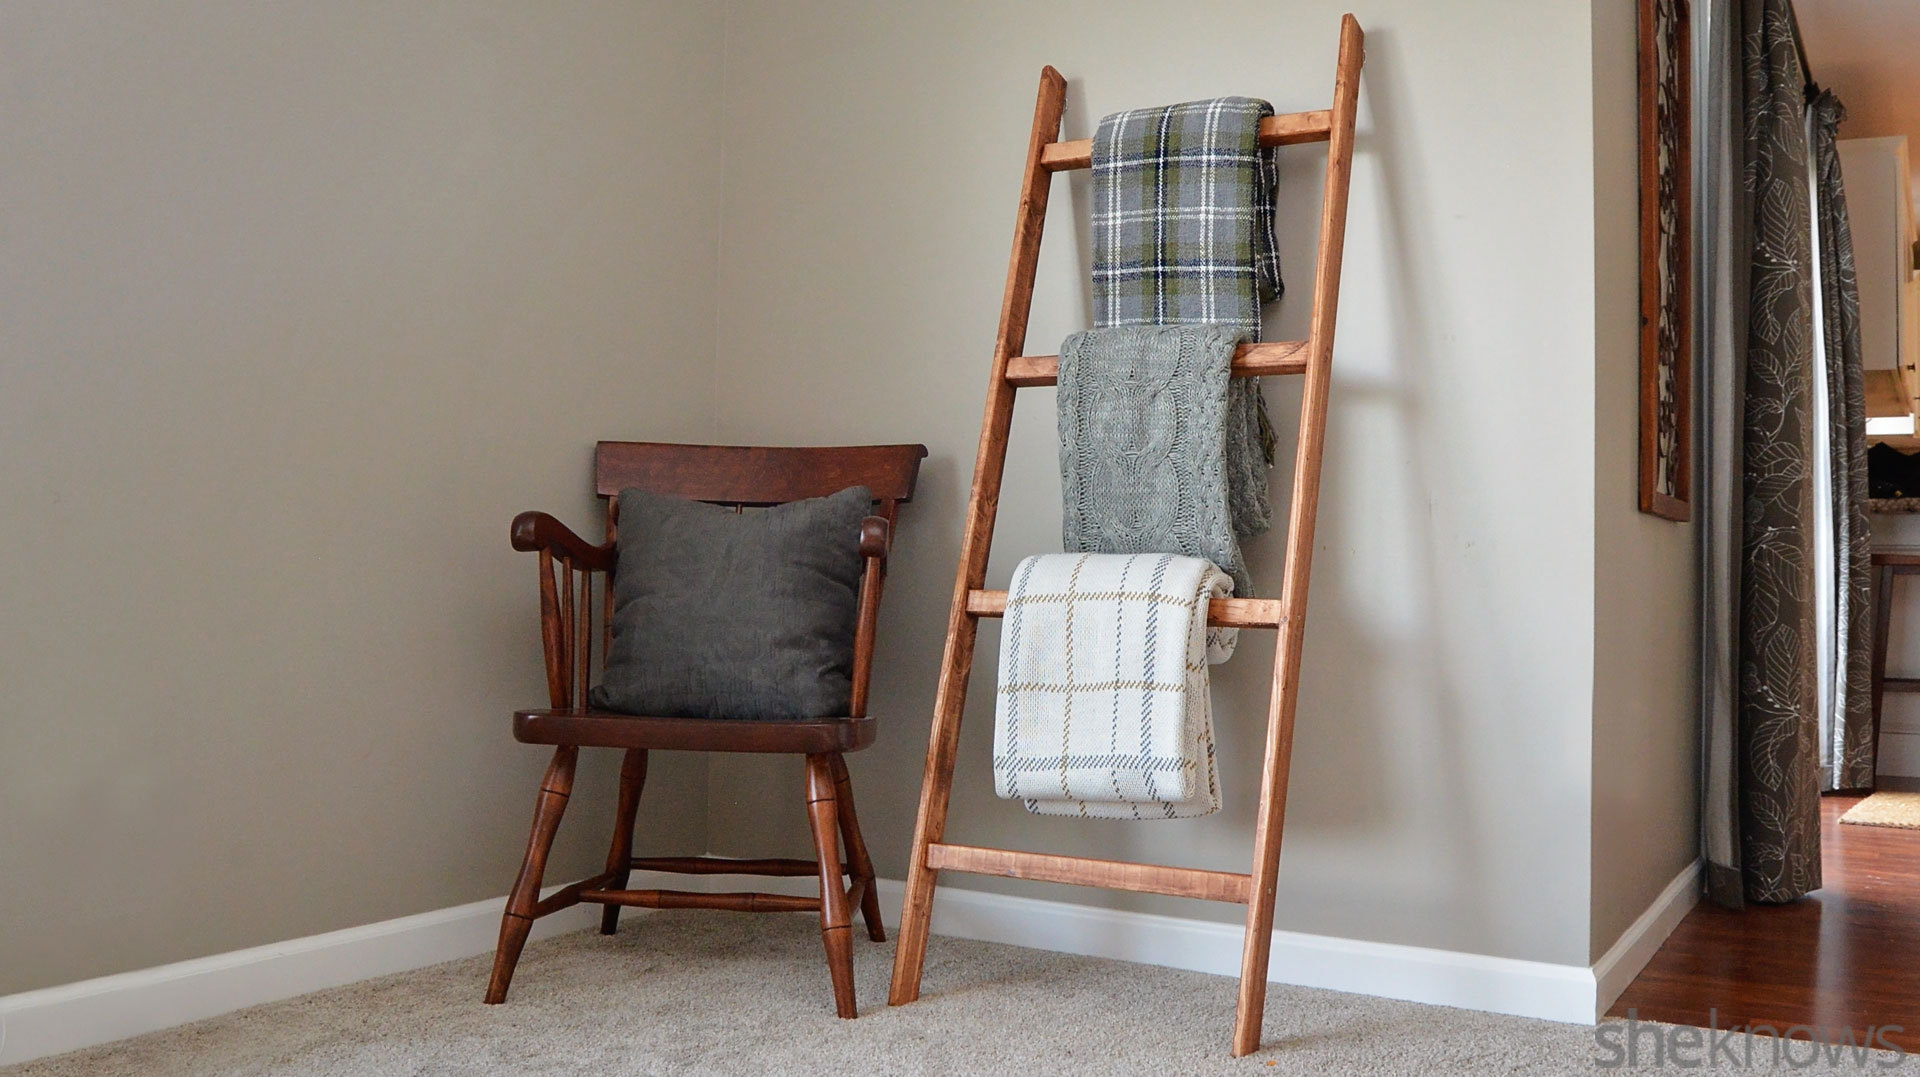 How To Make A Blanket Ladder An Easy Diy Project Perfect For Cold Weather Sheknows